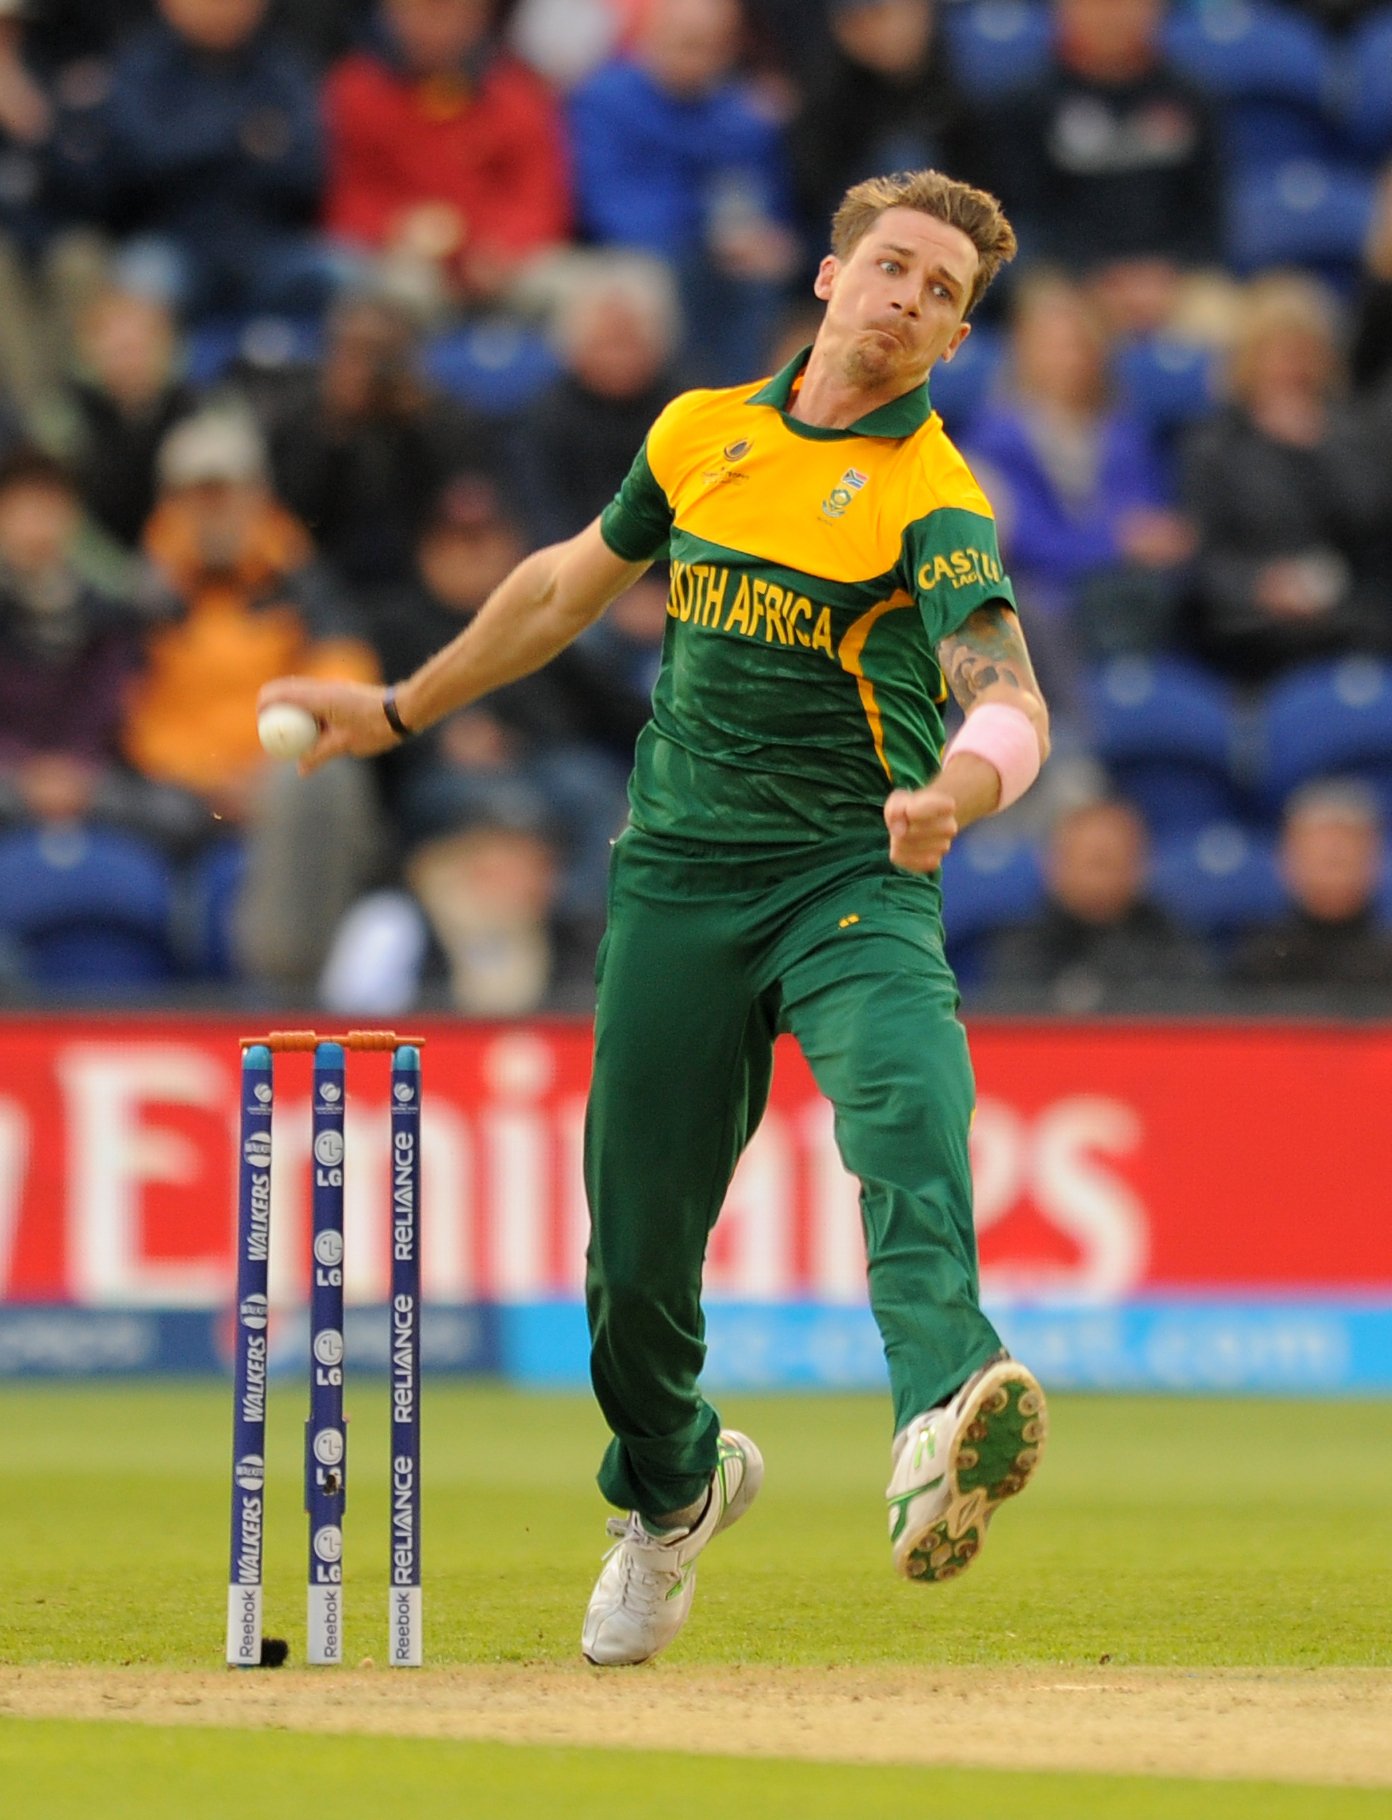 South Africa's Dale Steyn bowls during the ICC Champions Trophy match at The SWALEC Stadium Cardiff..